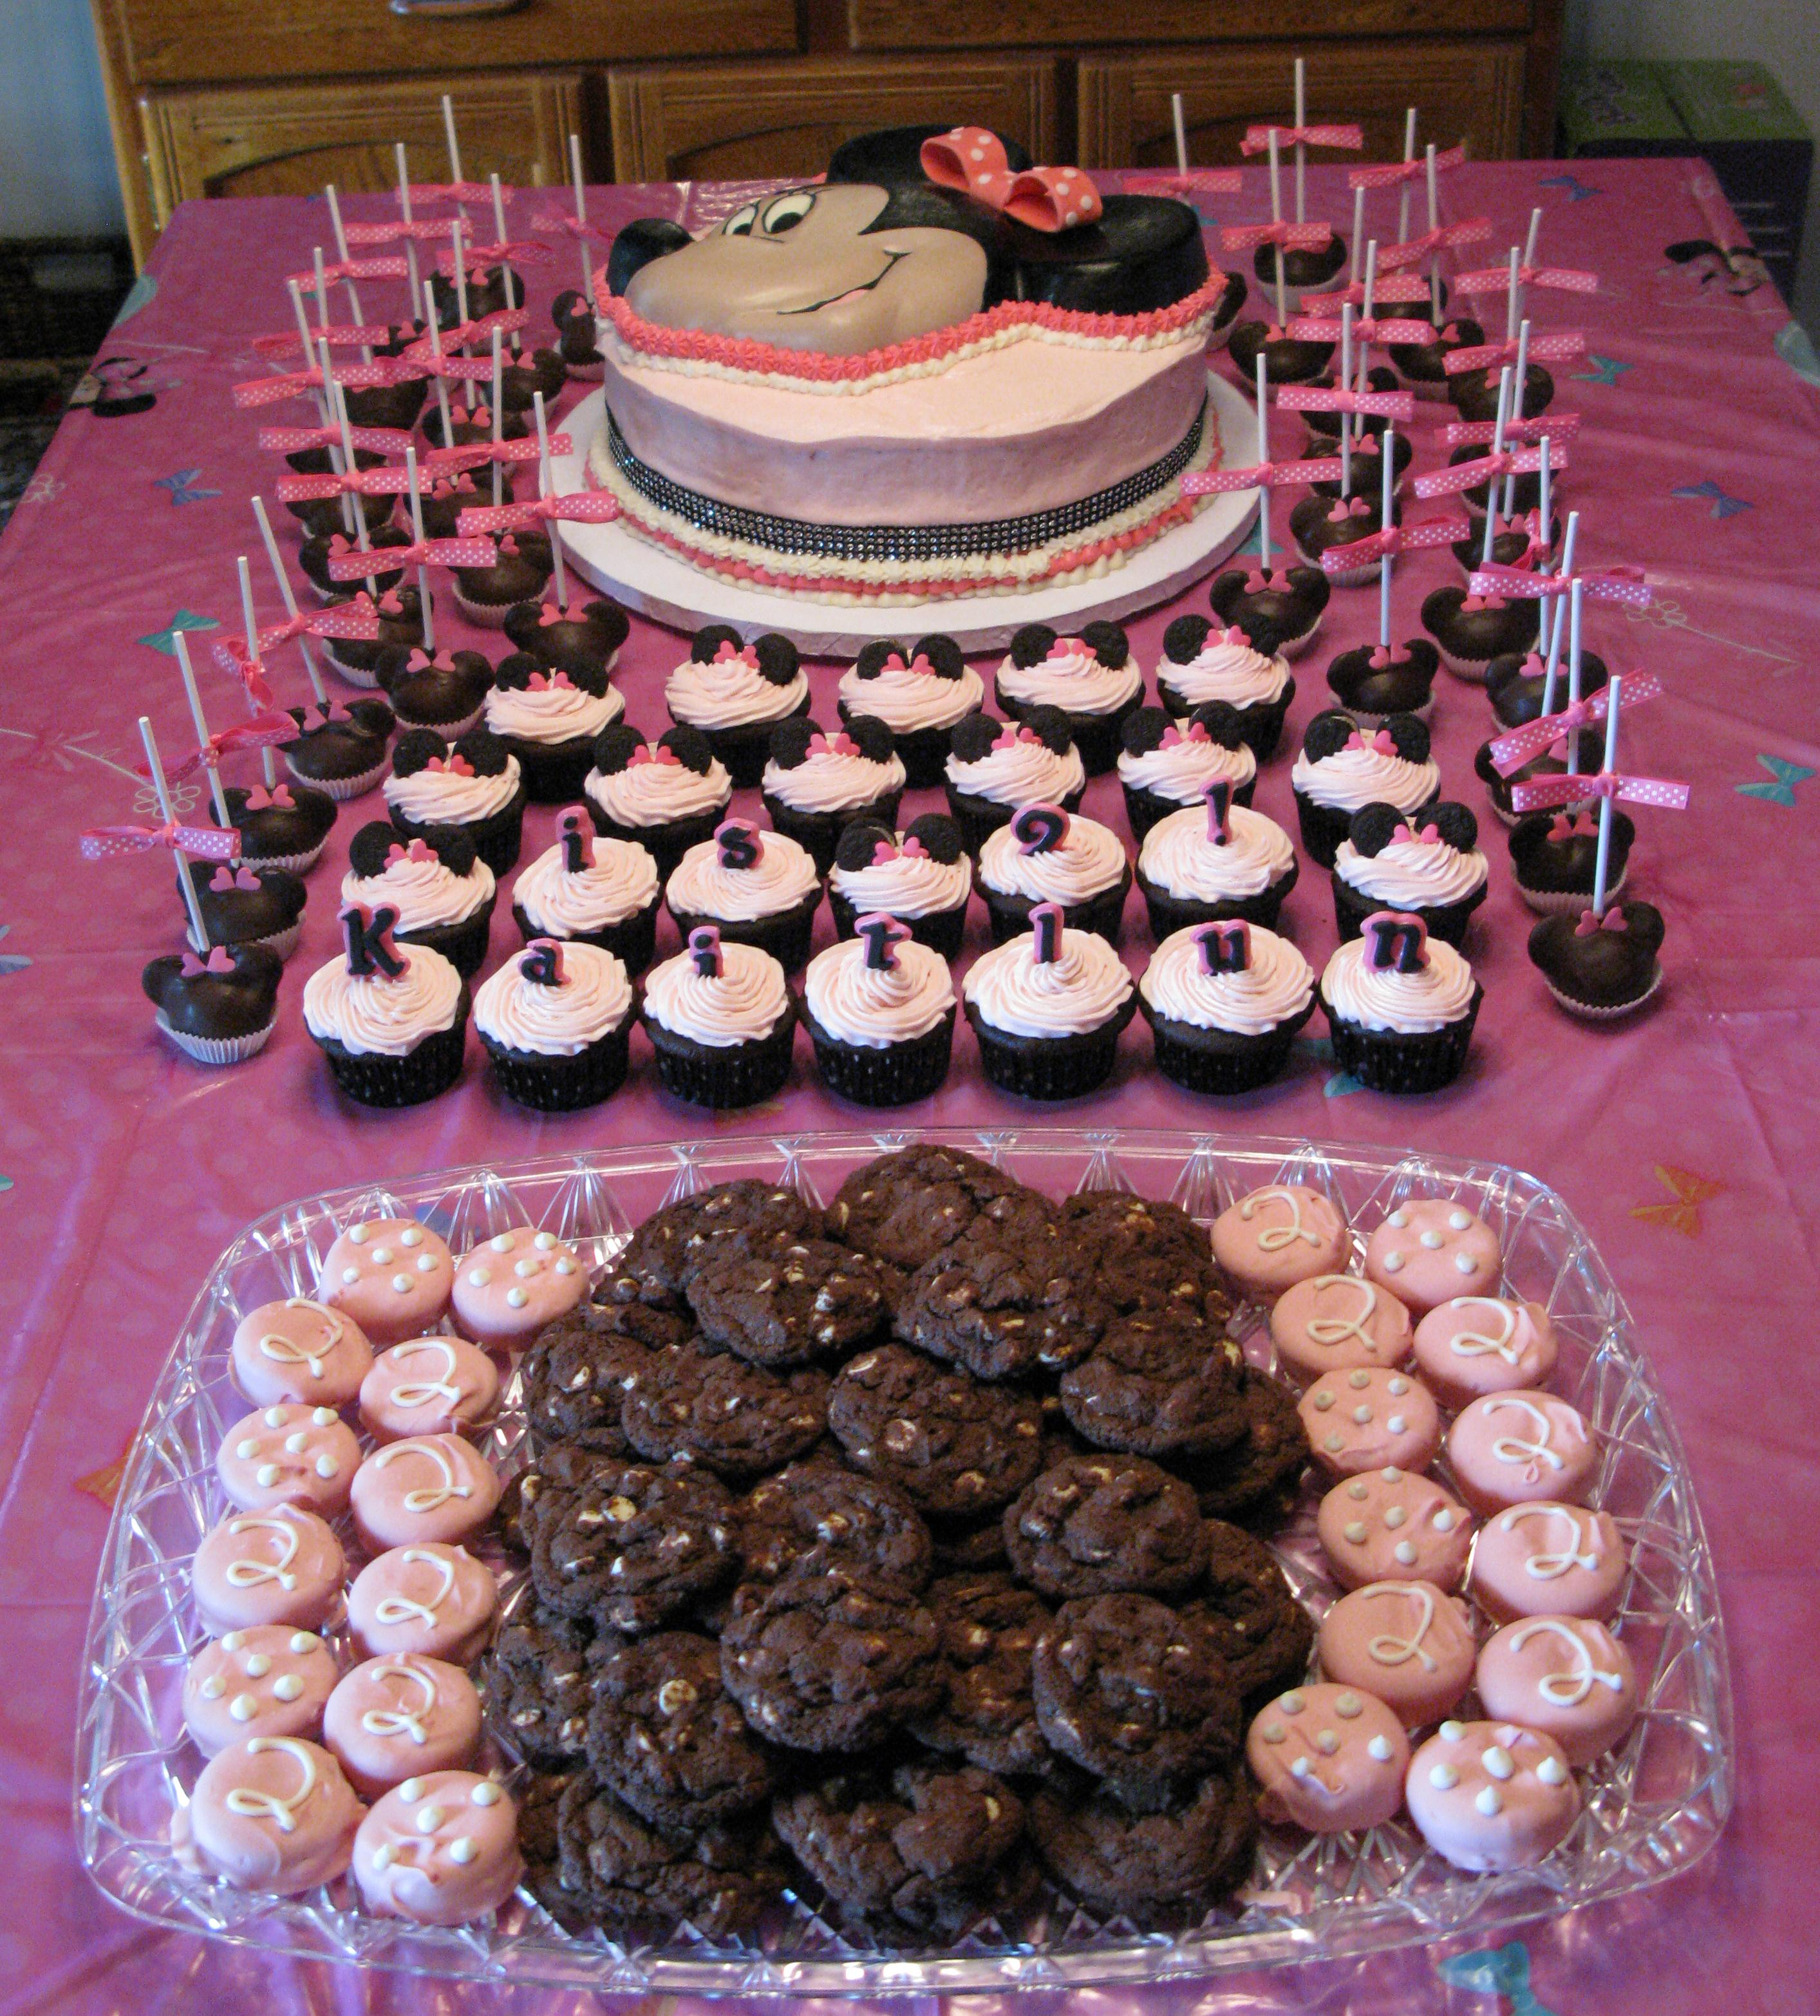 Minnie Mouse First Birthday Party Via Little Wish Parties: 1000+ Images About Minnie Mouse Theme For Maddy 1st BdY On